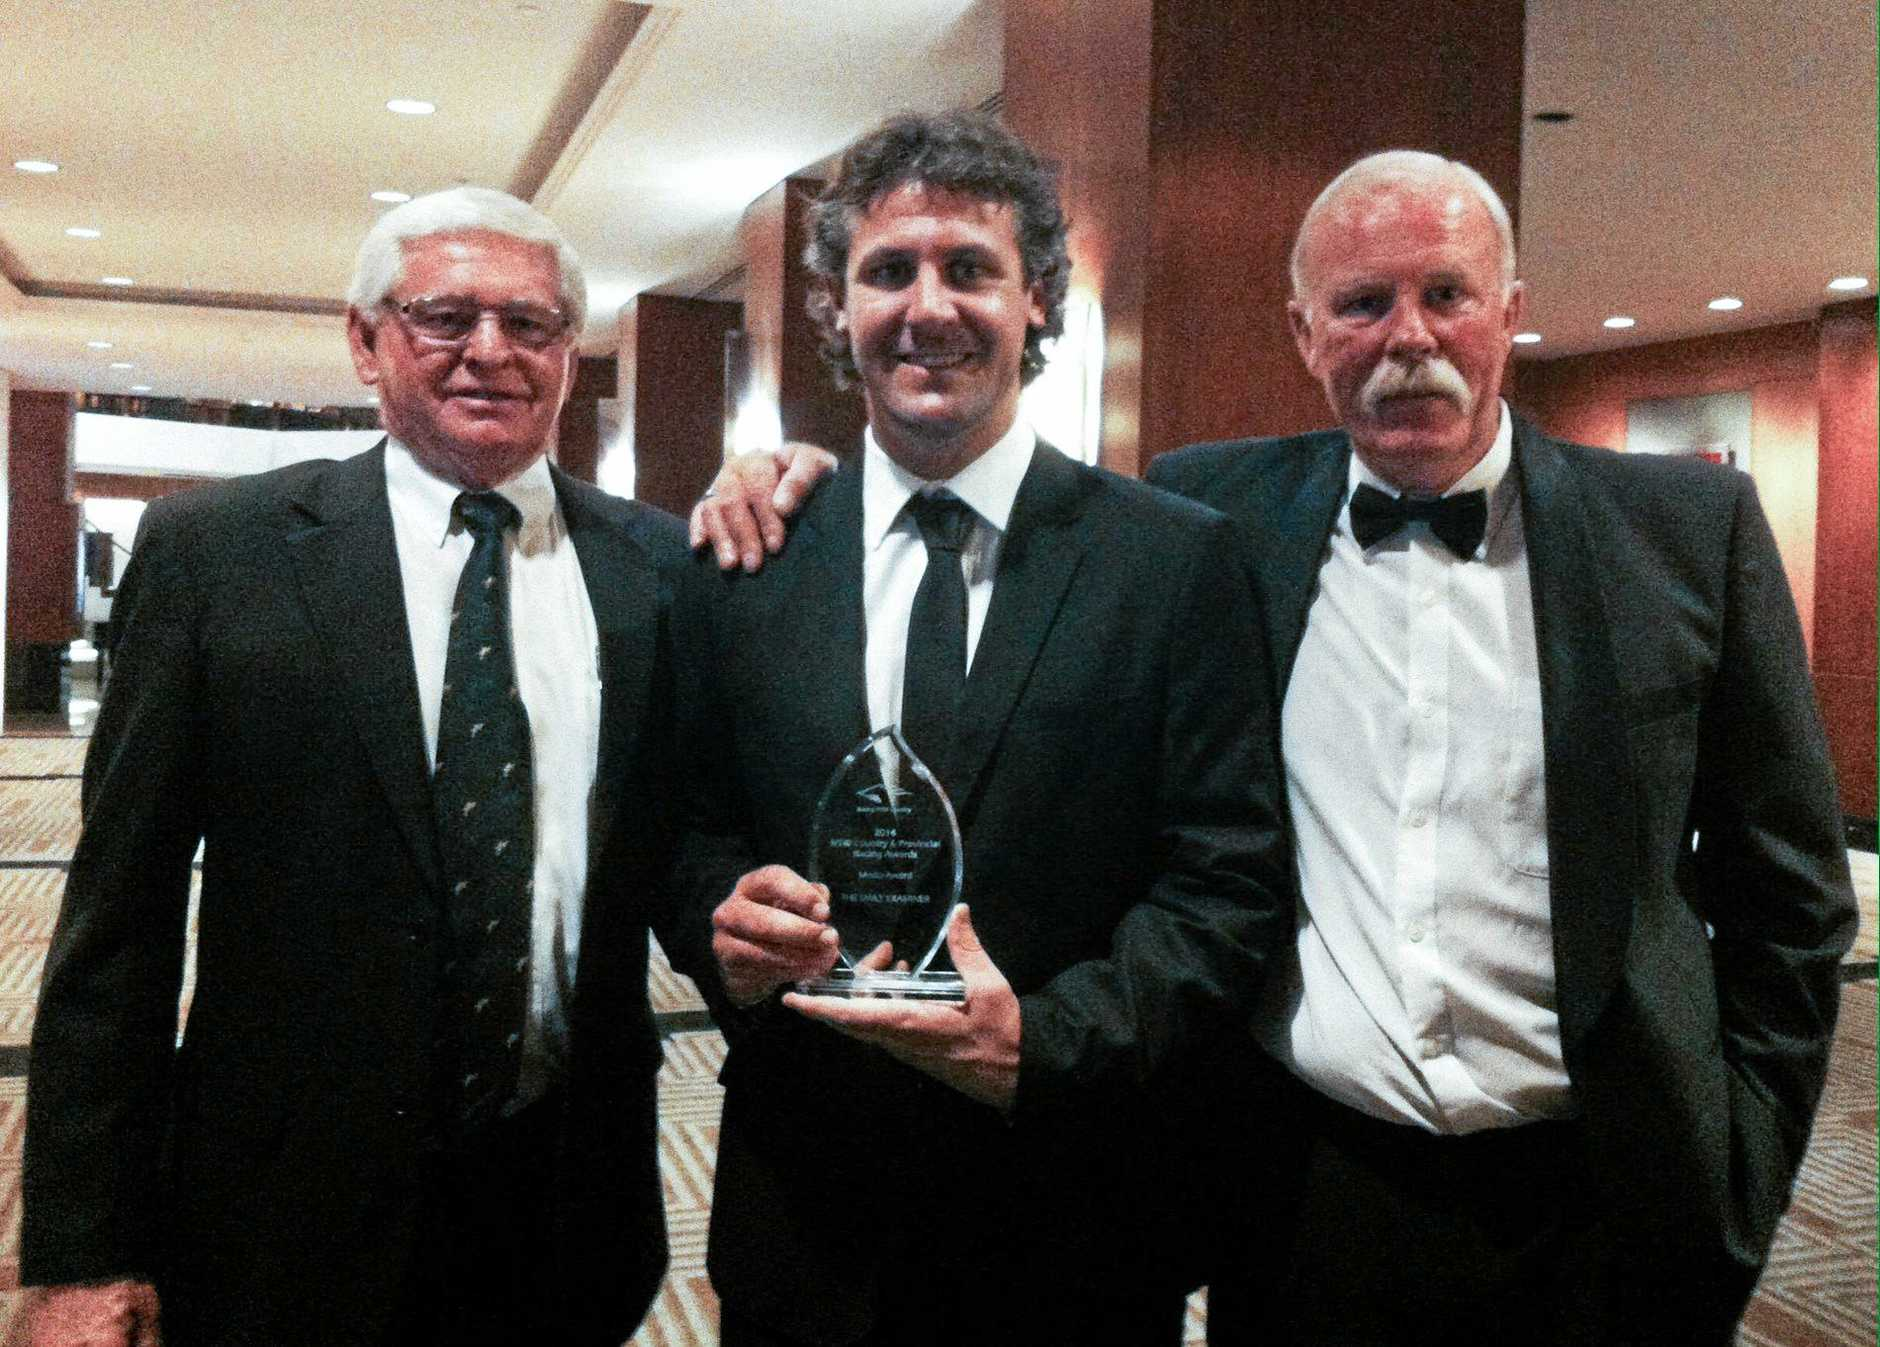 Then Daily Examiner sports editor Bill North (middle) holding the Country Media Award with Clarence River Jockey Club chairman Graeme Green and Racing NSW racing writer Tony White at the Racing NSW 2013/14 Country and Provincial Racing Awards at the Four Seasons Hotel in Sydney in 2014.